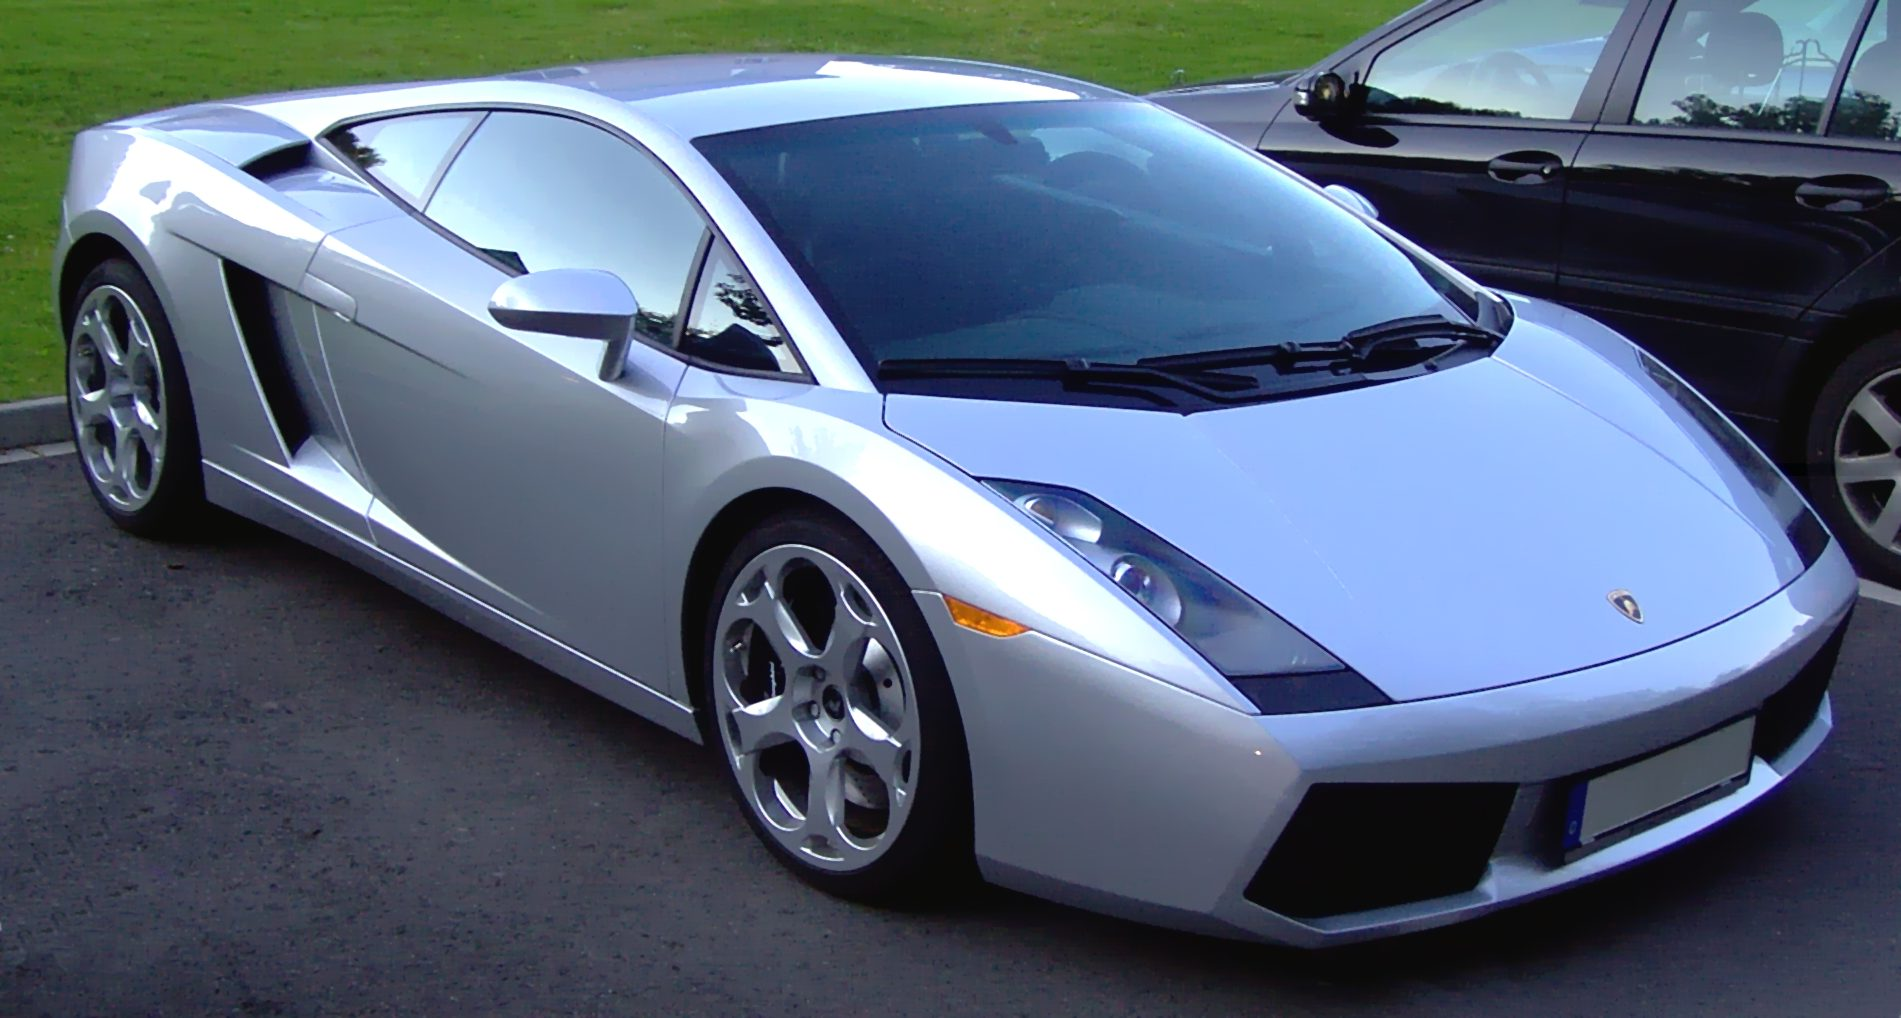 2003 Lamborghini Gallardo Screensavers